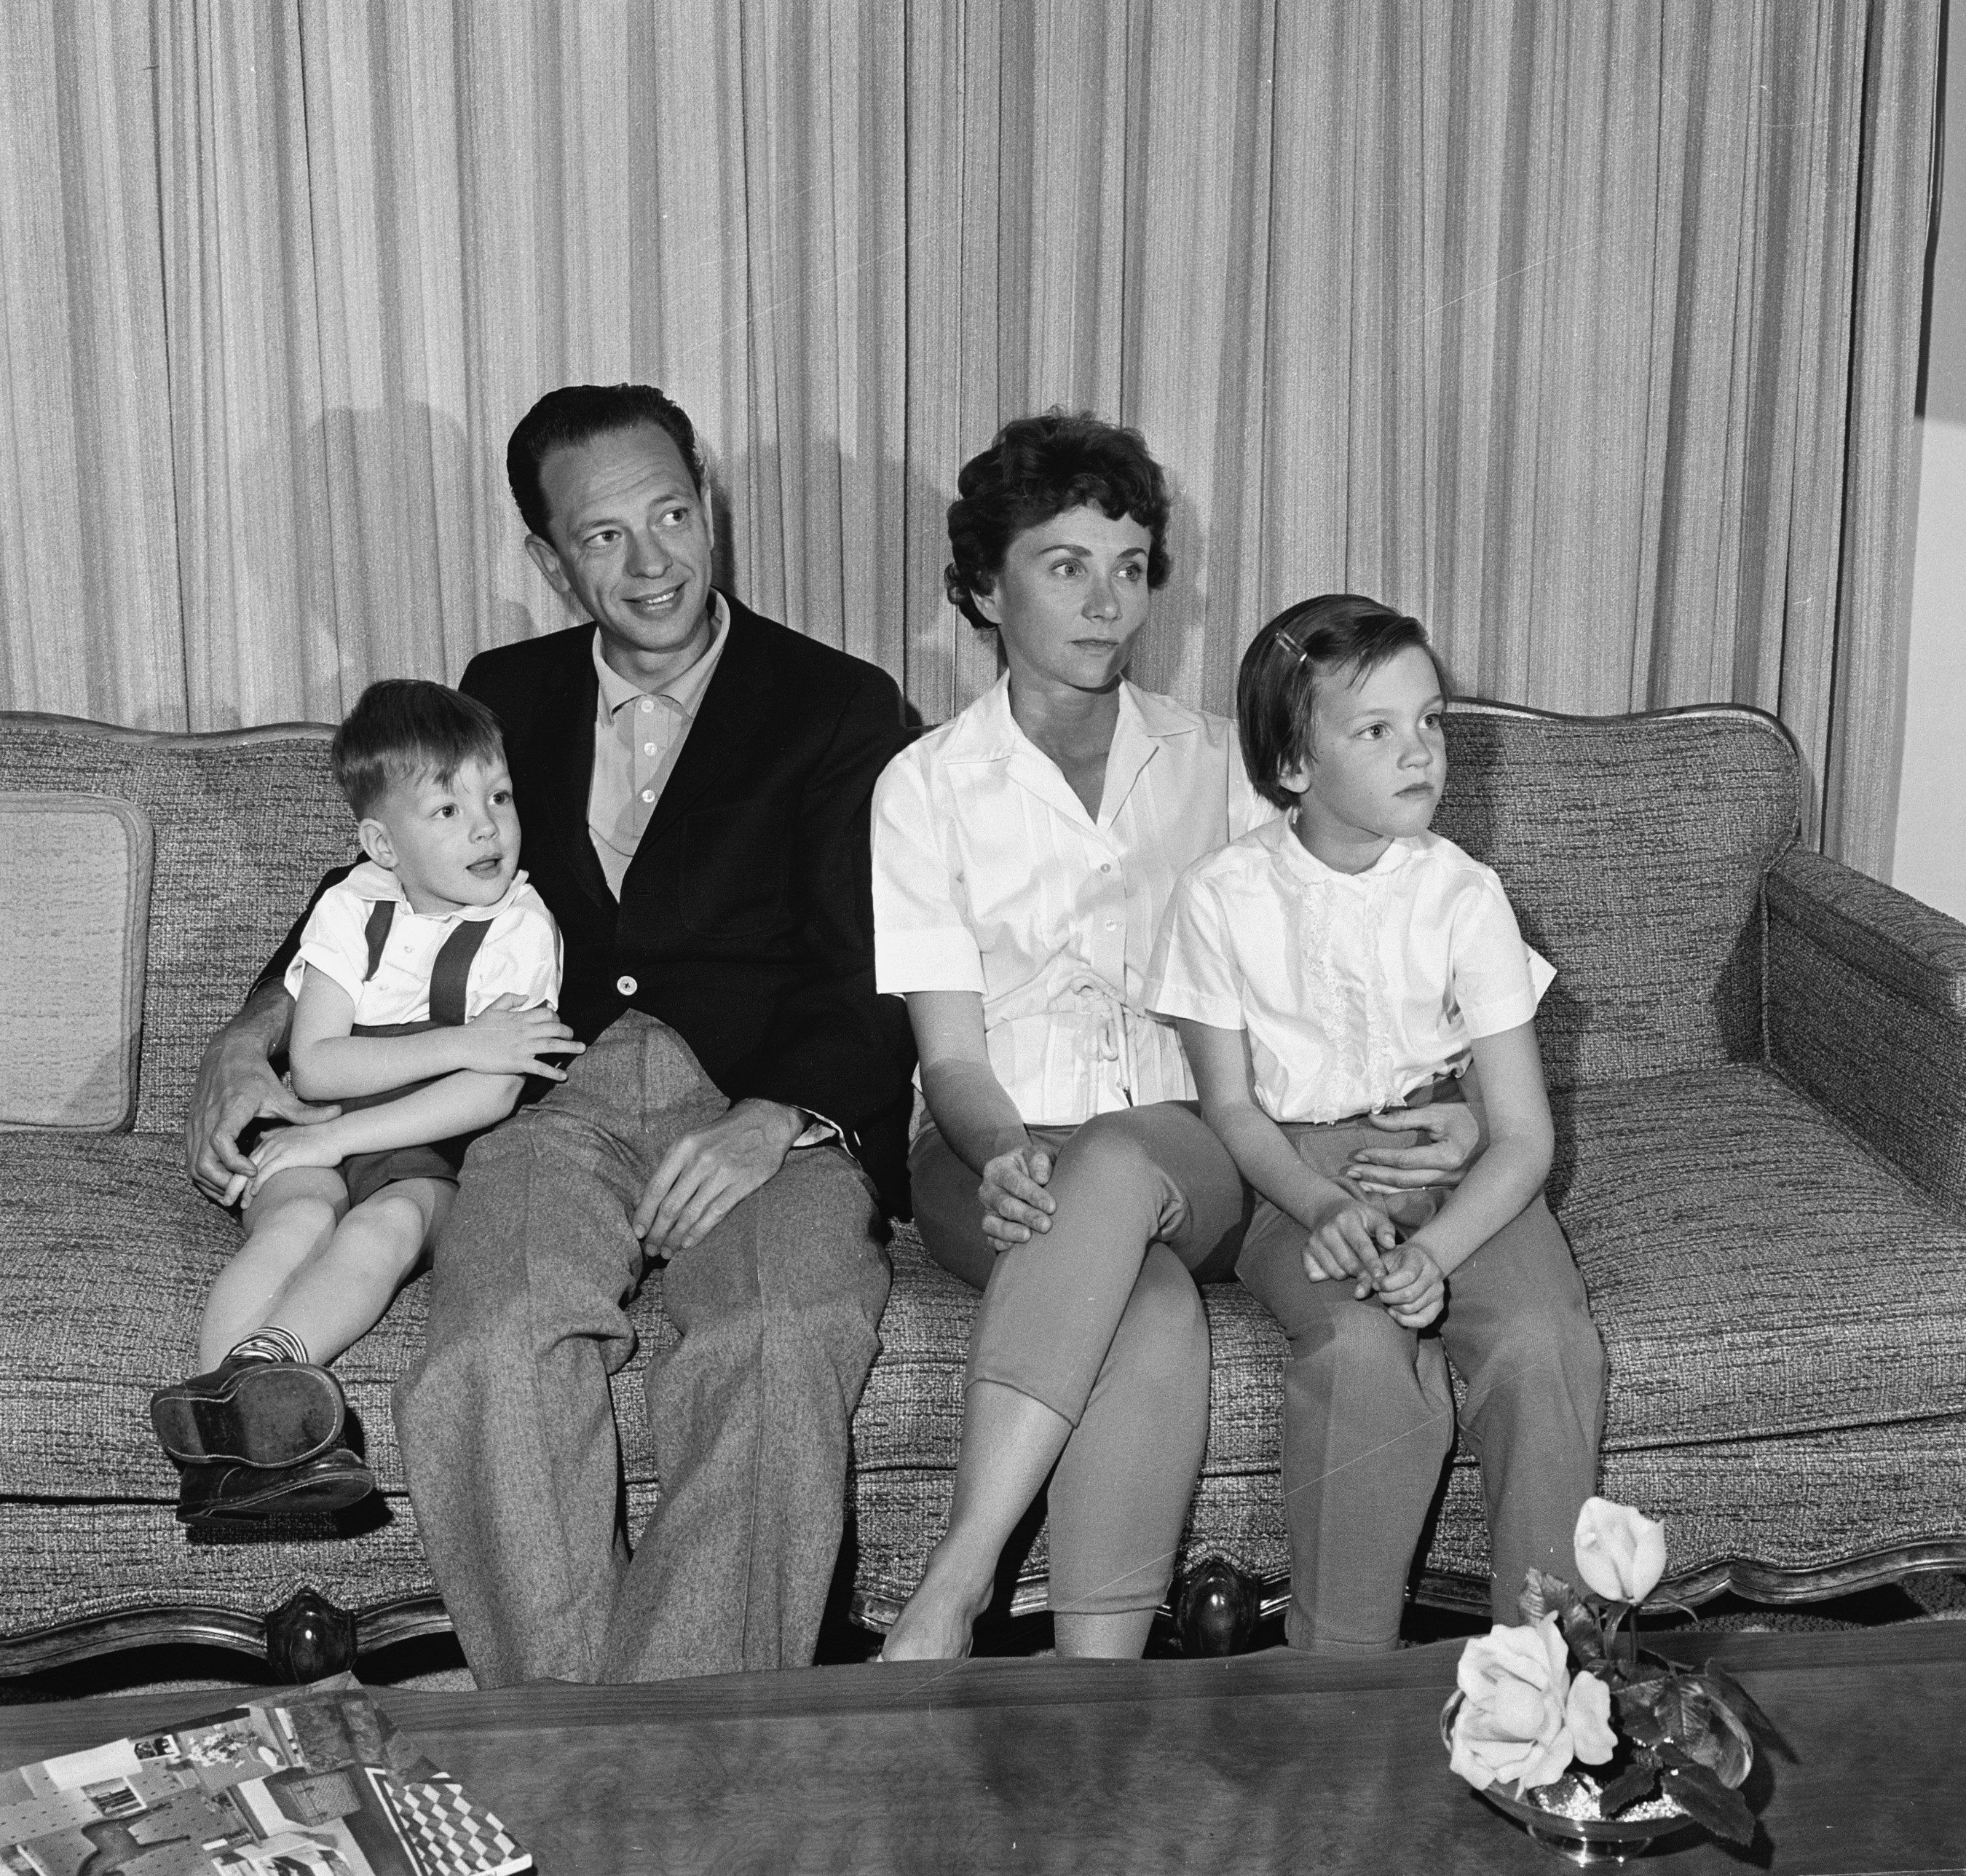 Don Knotts with his family at home, March 2, 1961. | Photo: Getty Images